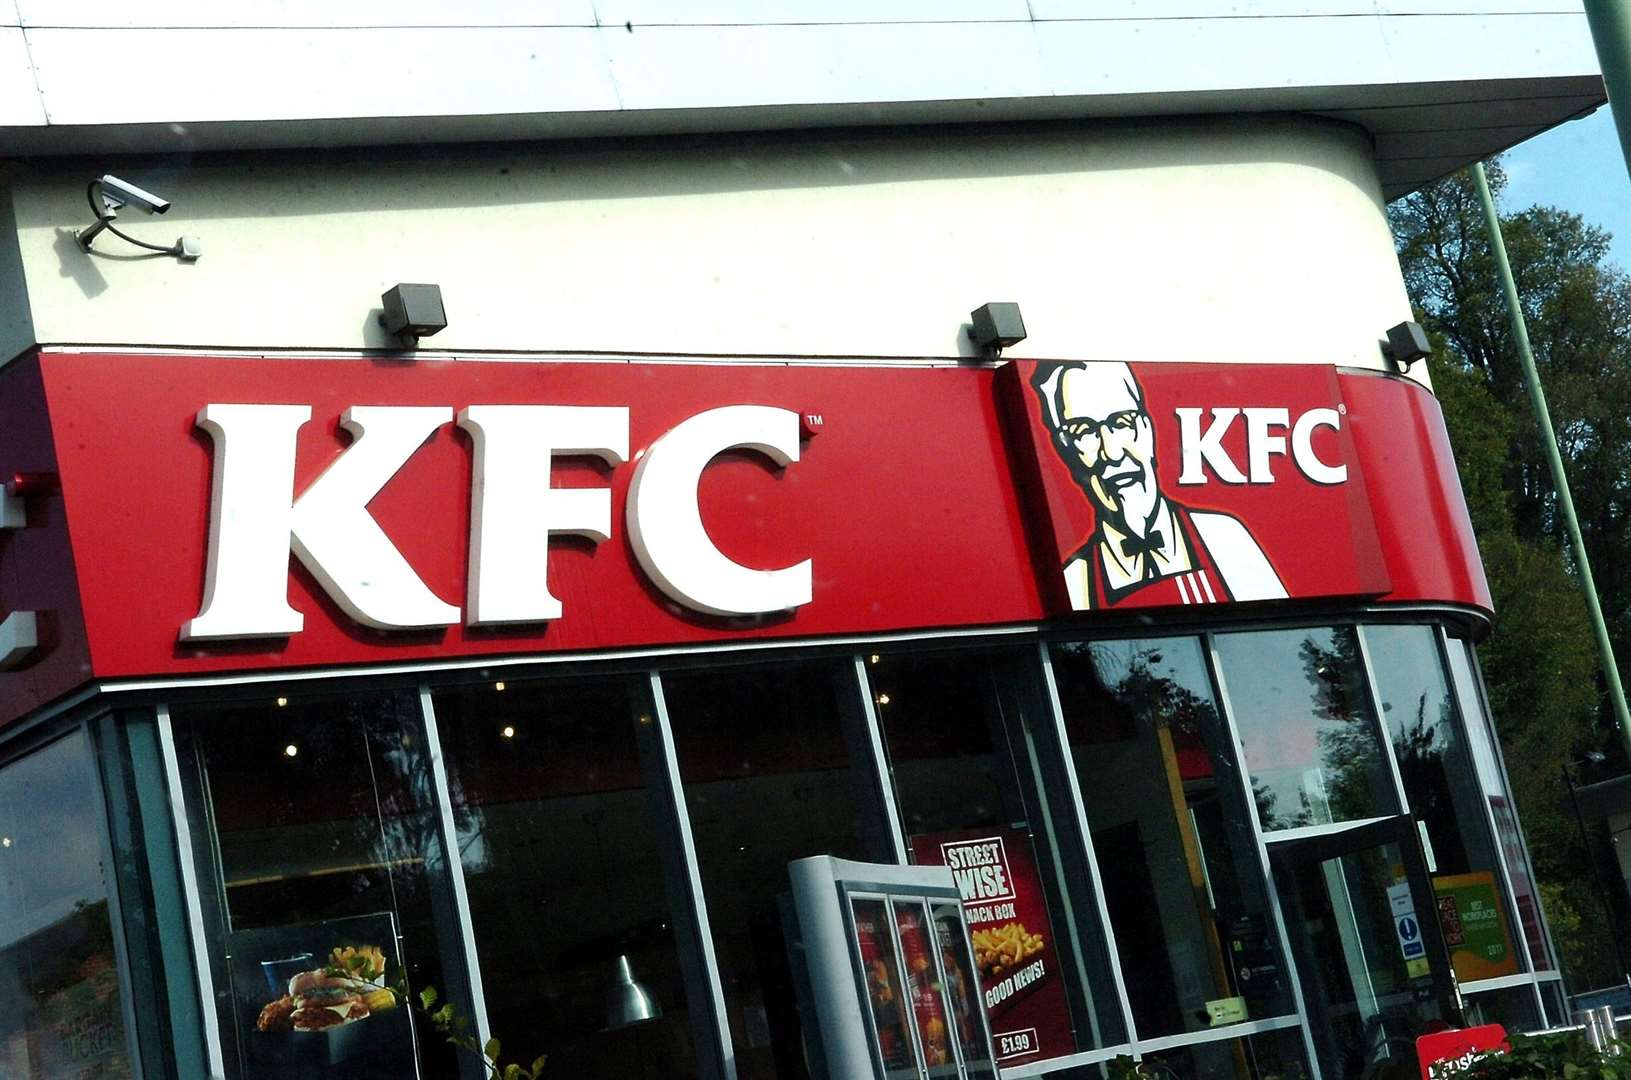 KFC is warning that some items from its menu may not be available for customers